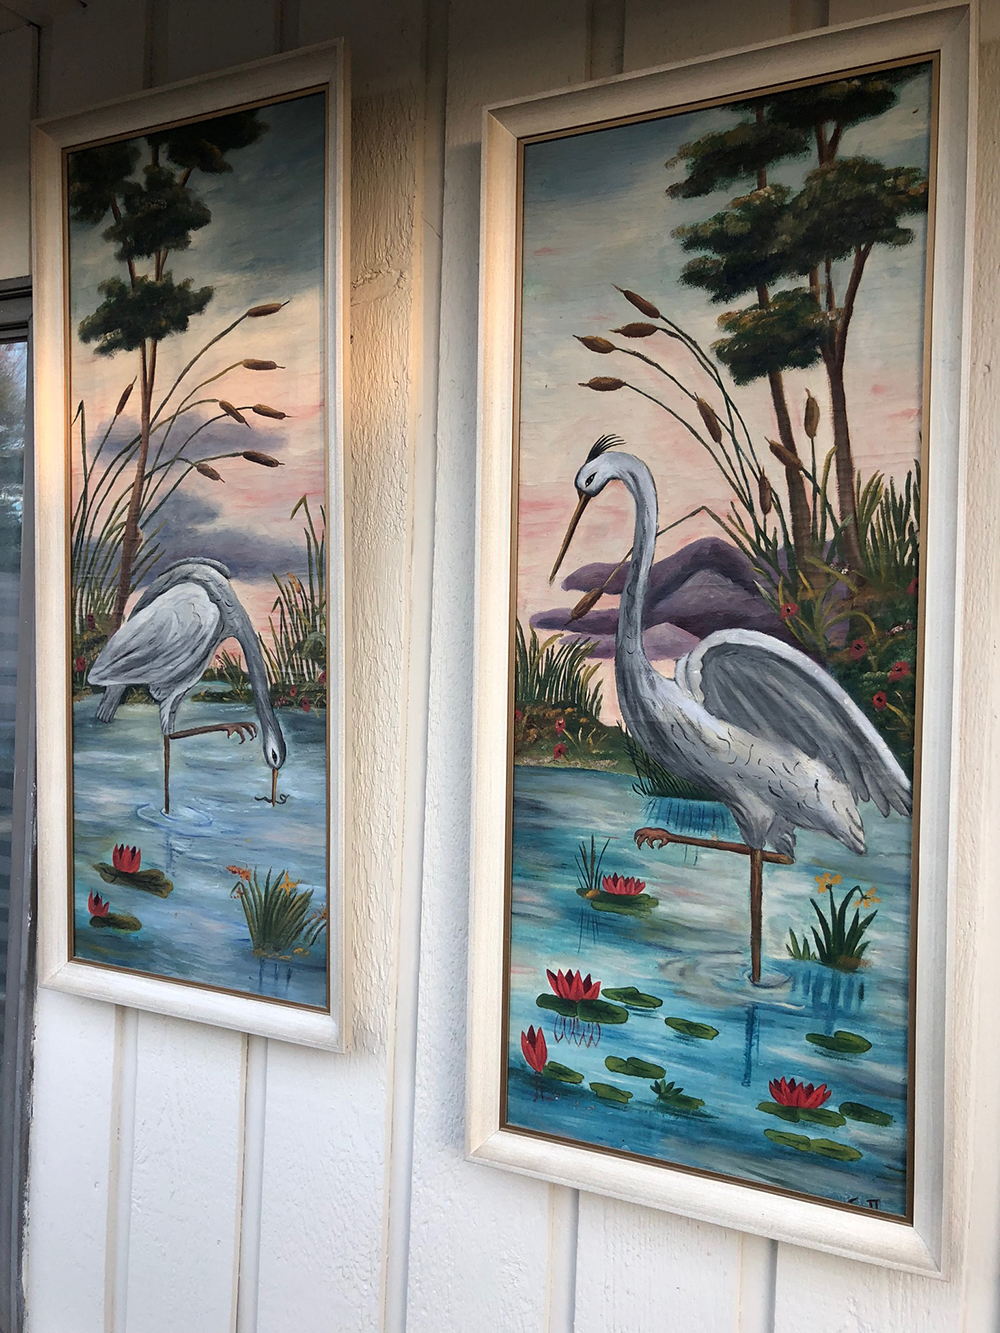 Lot 49: Pair of Swan Oil Paintings on Canvas